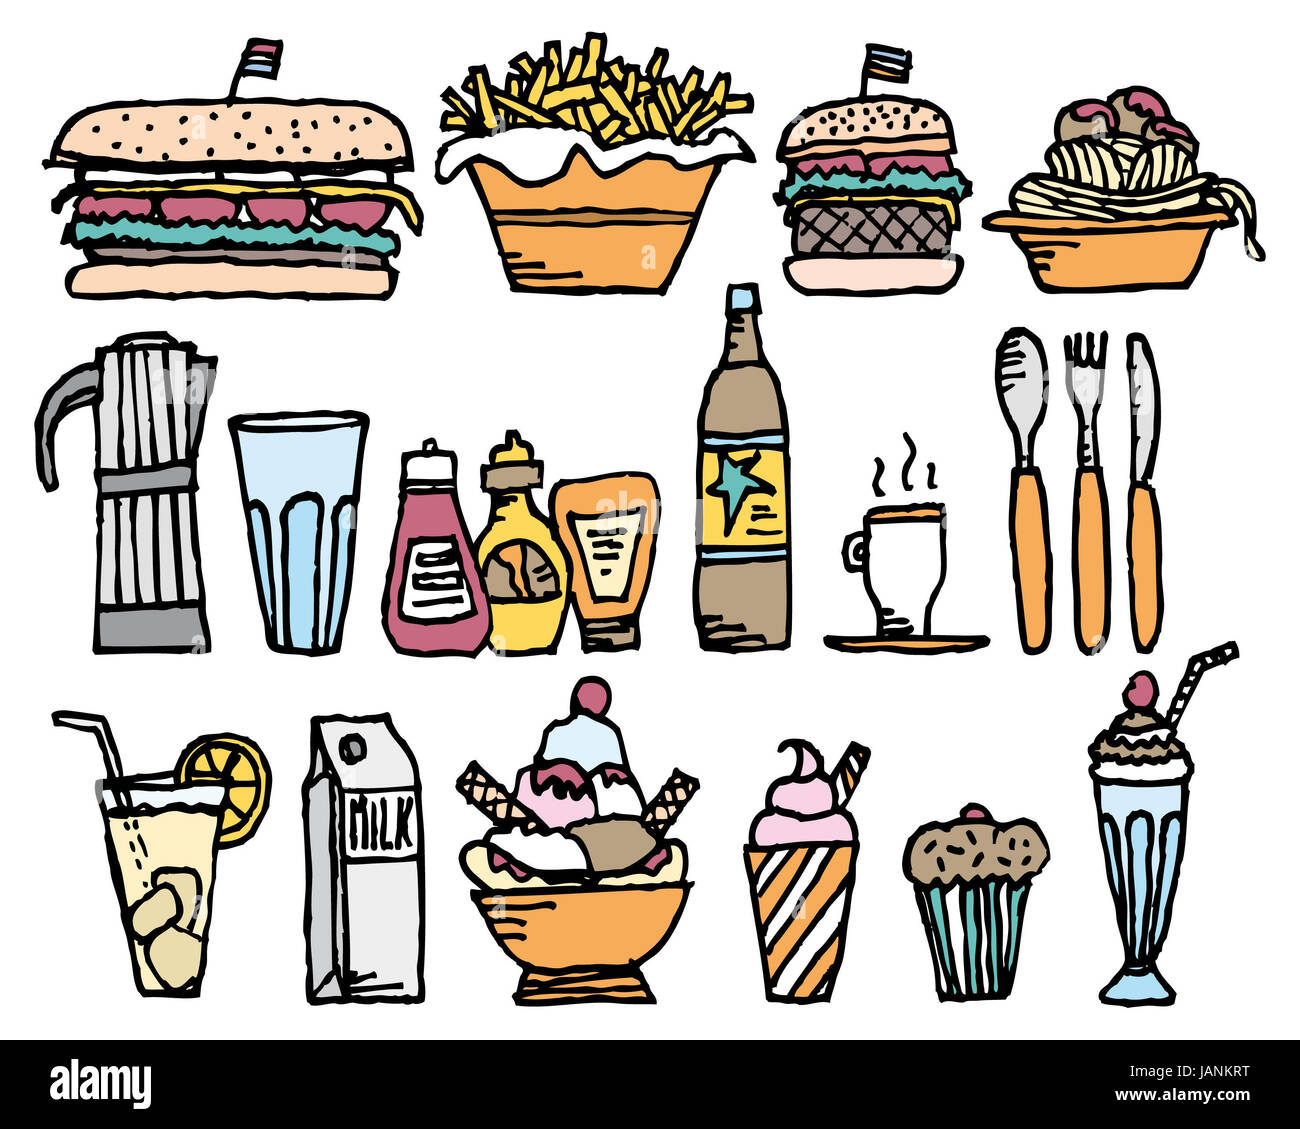 Food and drinks / Color restaurant stuff Stock Photo: 144306060 - Alamy